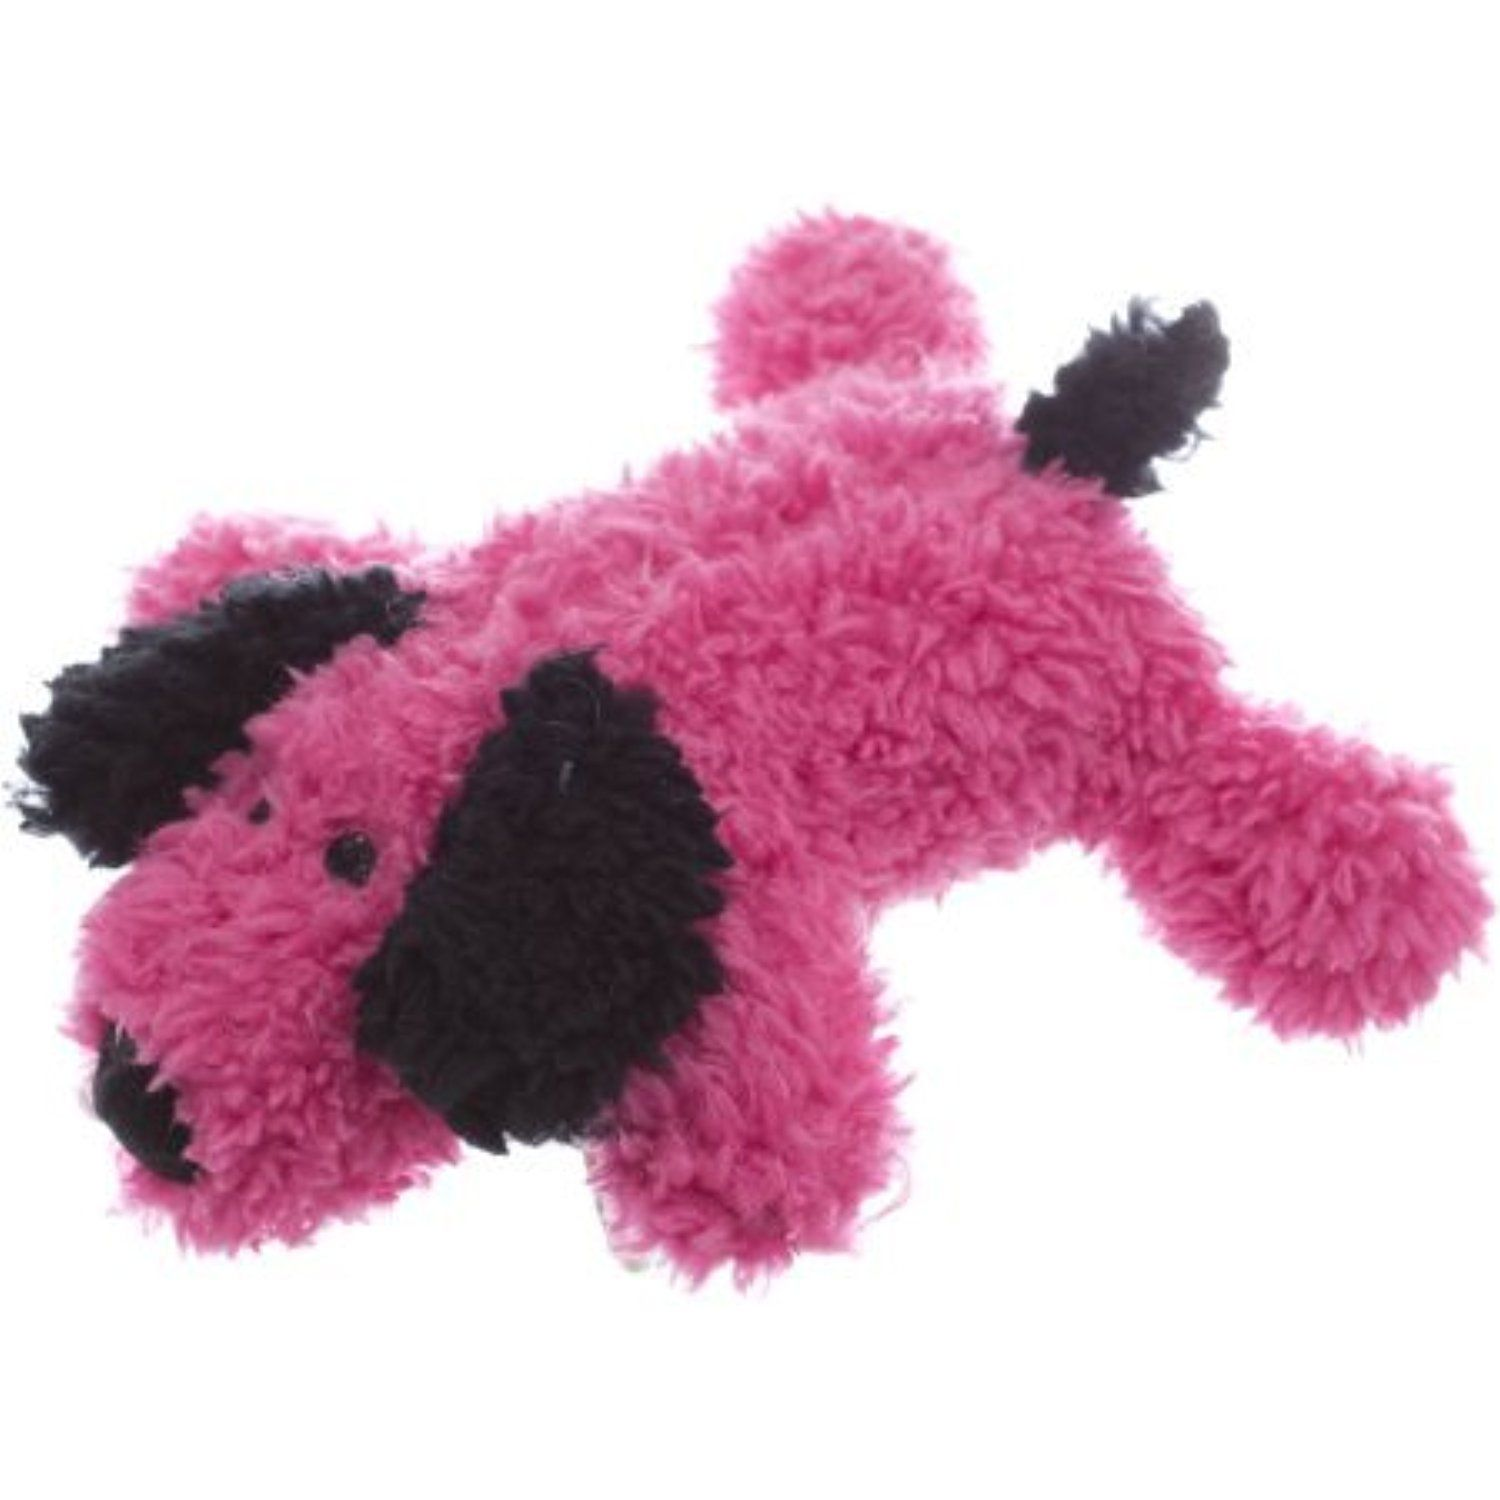 6 5 Super Soft Squeaky Plush Dog Toy Hot Pink Puppy You Can